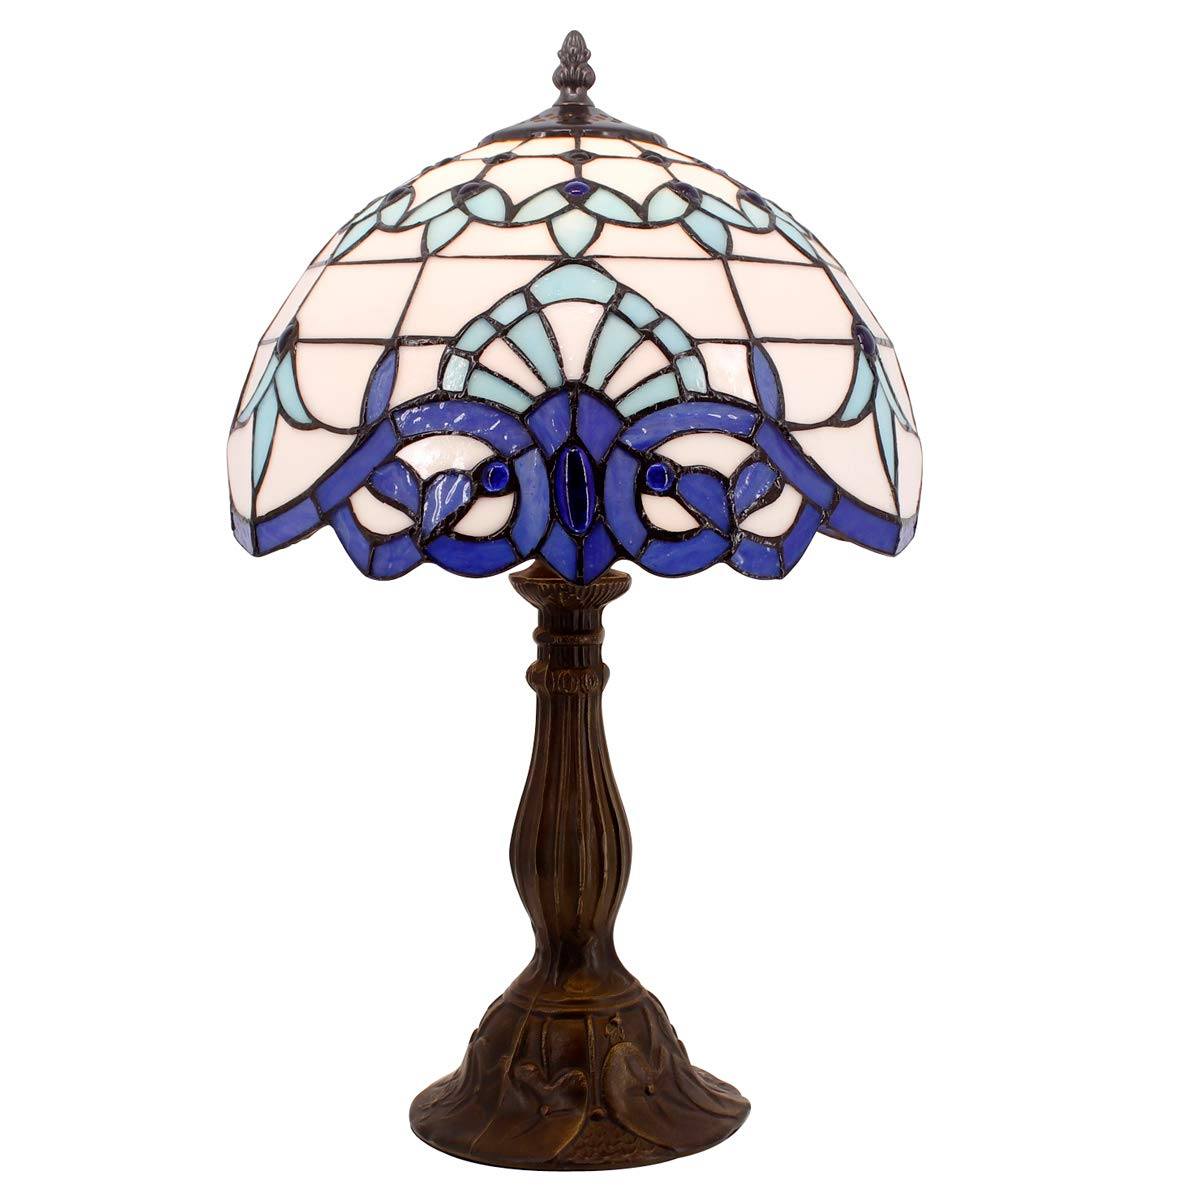 Tiffany Lamp White Blue Baroque Stained Glass Lampshade Antique Style Base Table Lamps Lighting W12 H18 Inch Living Room Bedroom Bedside Desk Lamp S003B WERFACTORY S003B